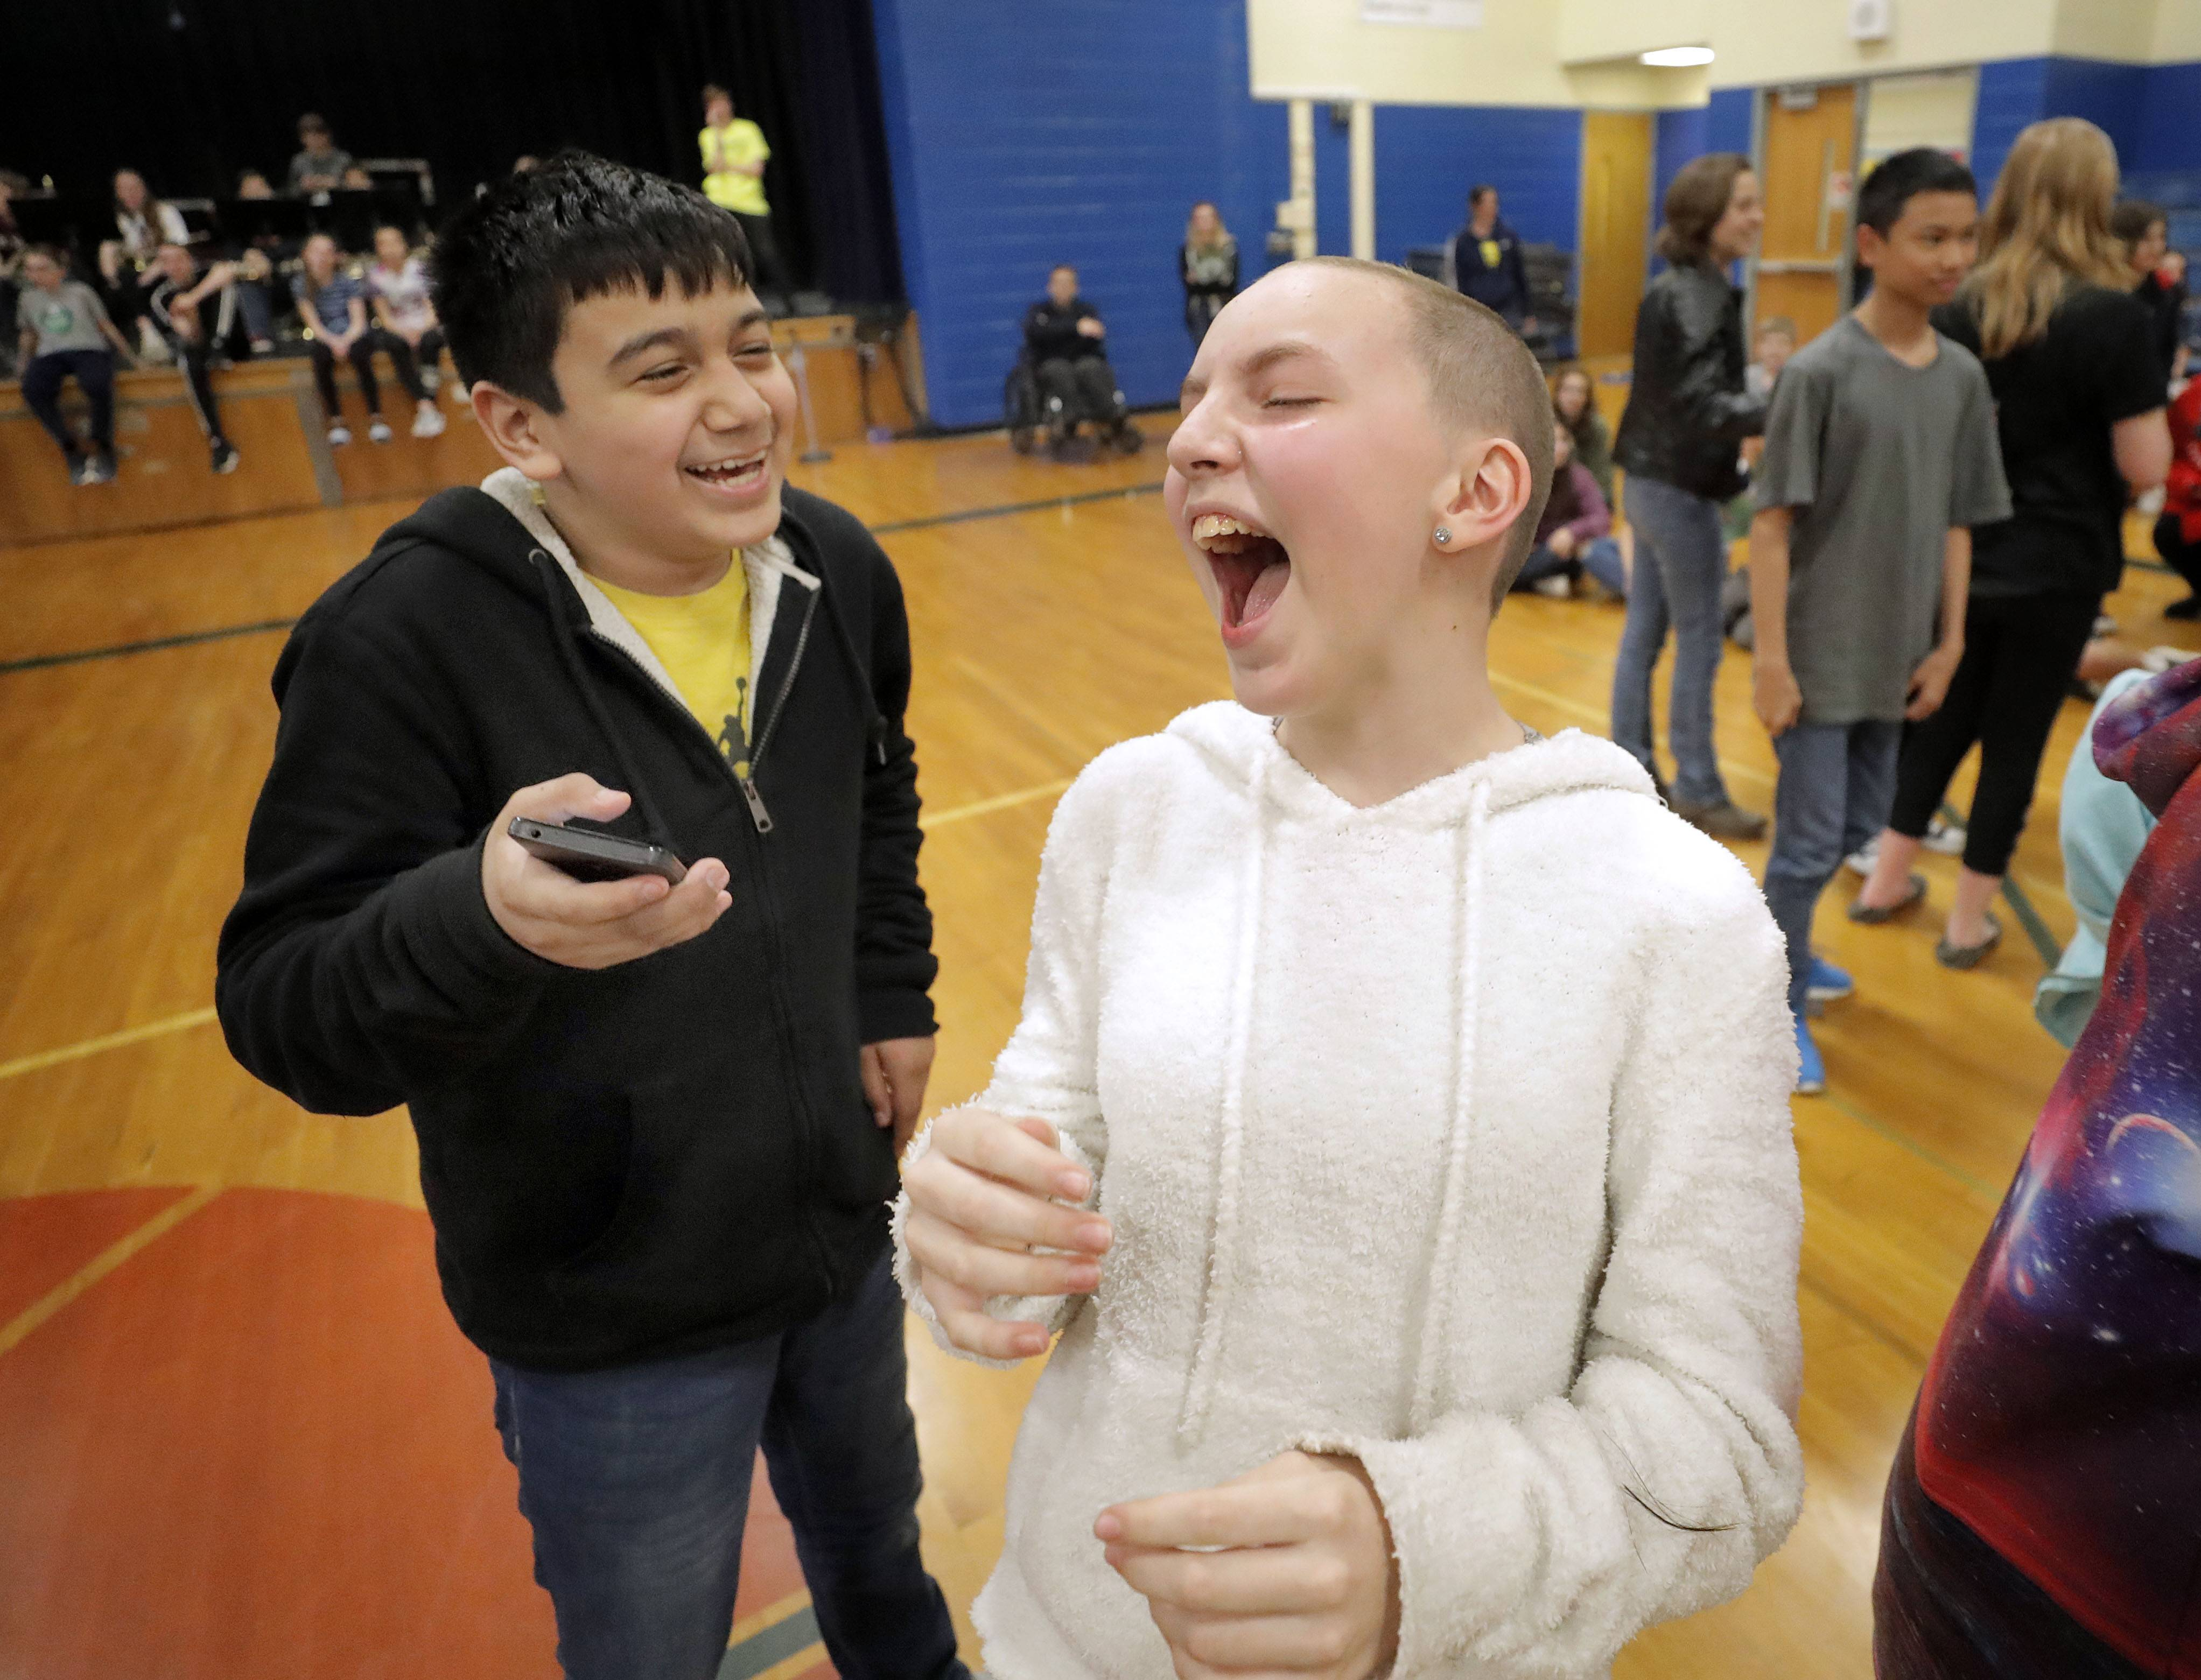 Mariana Barroso, 13, right, explodes in laughter after seeing a picture of her shaved head from friend Santiago Tellez at the Grayslake Middle School Cut & Shave Fundraiser supporting childhood cancer research for the St. Baldrick's Foundation Thursday.